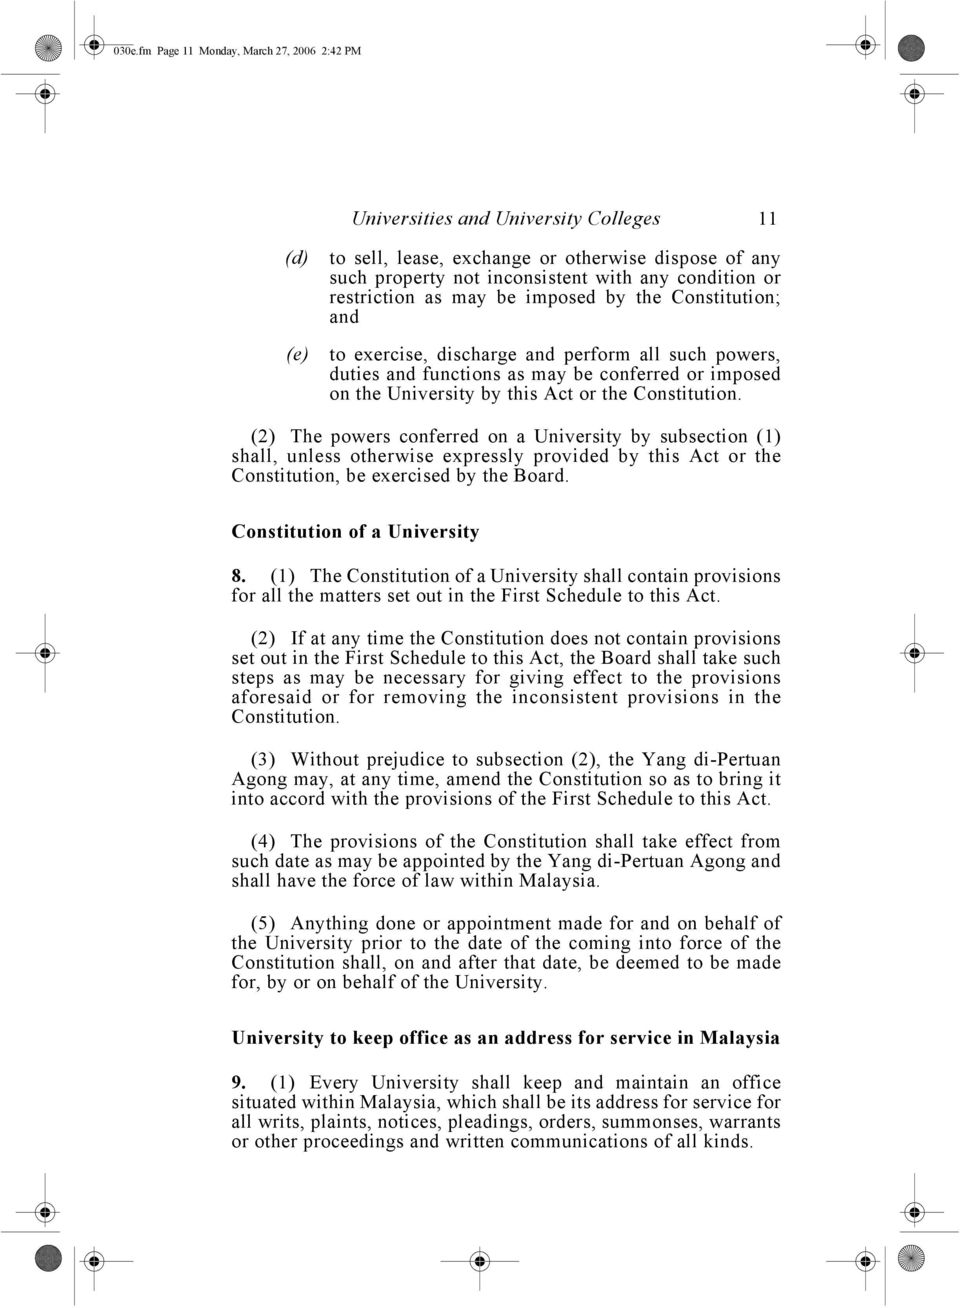 Constitution. (2) The powers conferred on a University by subsection (1) shall, unless otherwise expressly provided by this Act or the Constitution, be exercised by the Board.